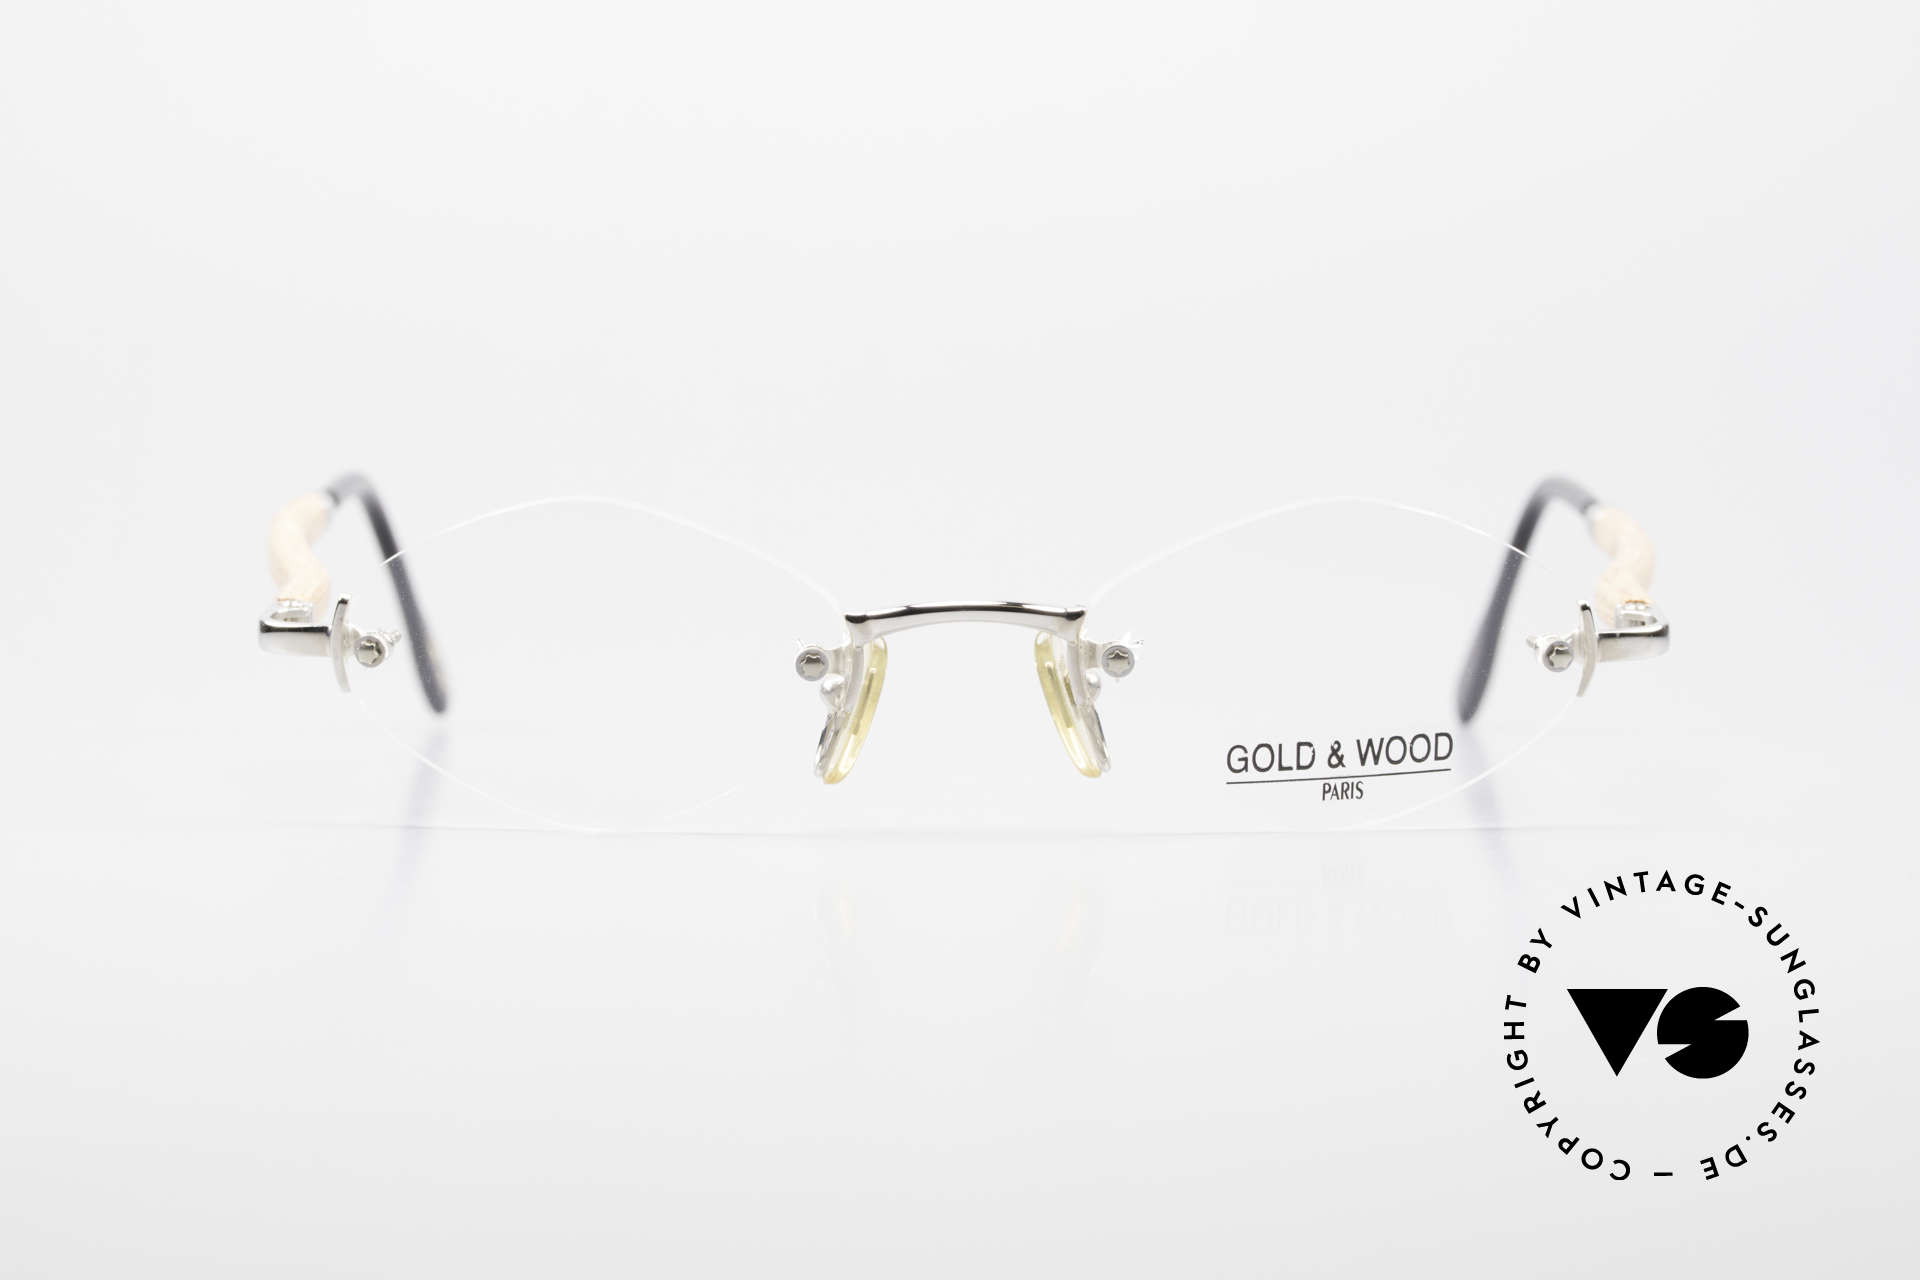 Gold & Wood S02 Luxury Rimless Spectacles, classic, rimless luxury eyeglass-frame from 2001, Made for Men and Women